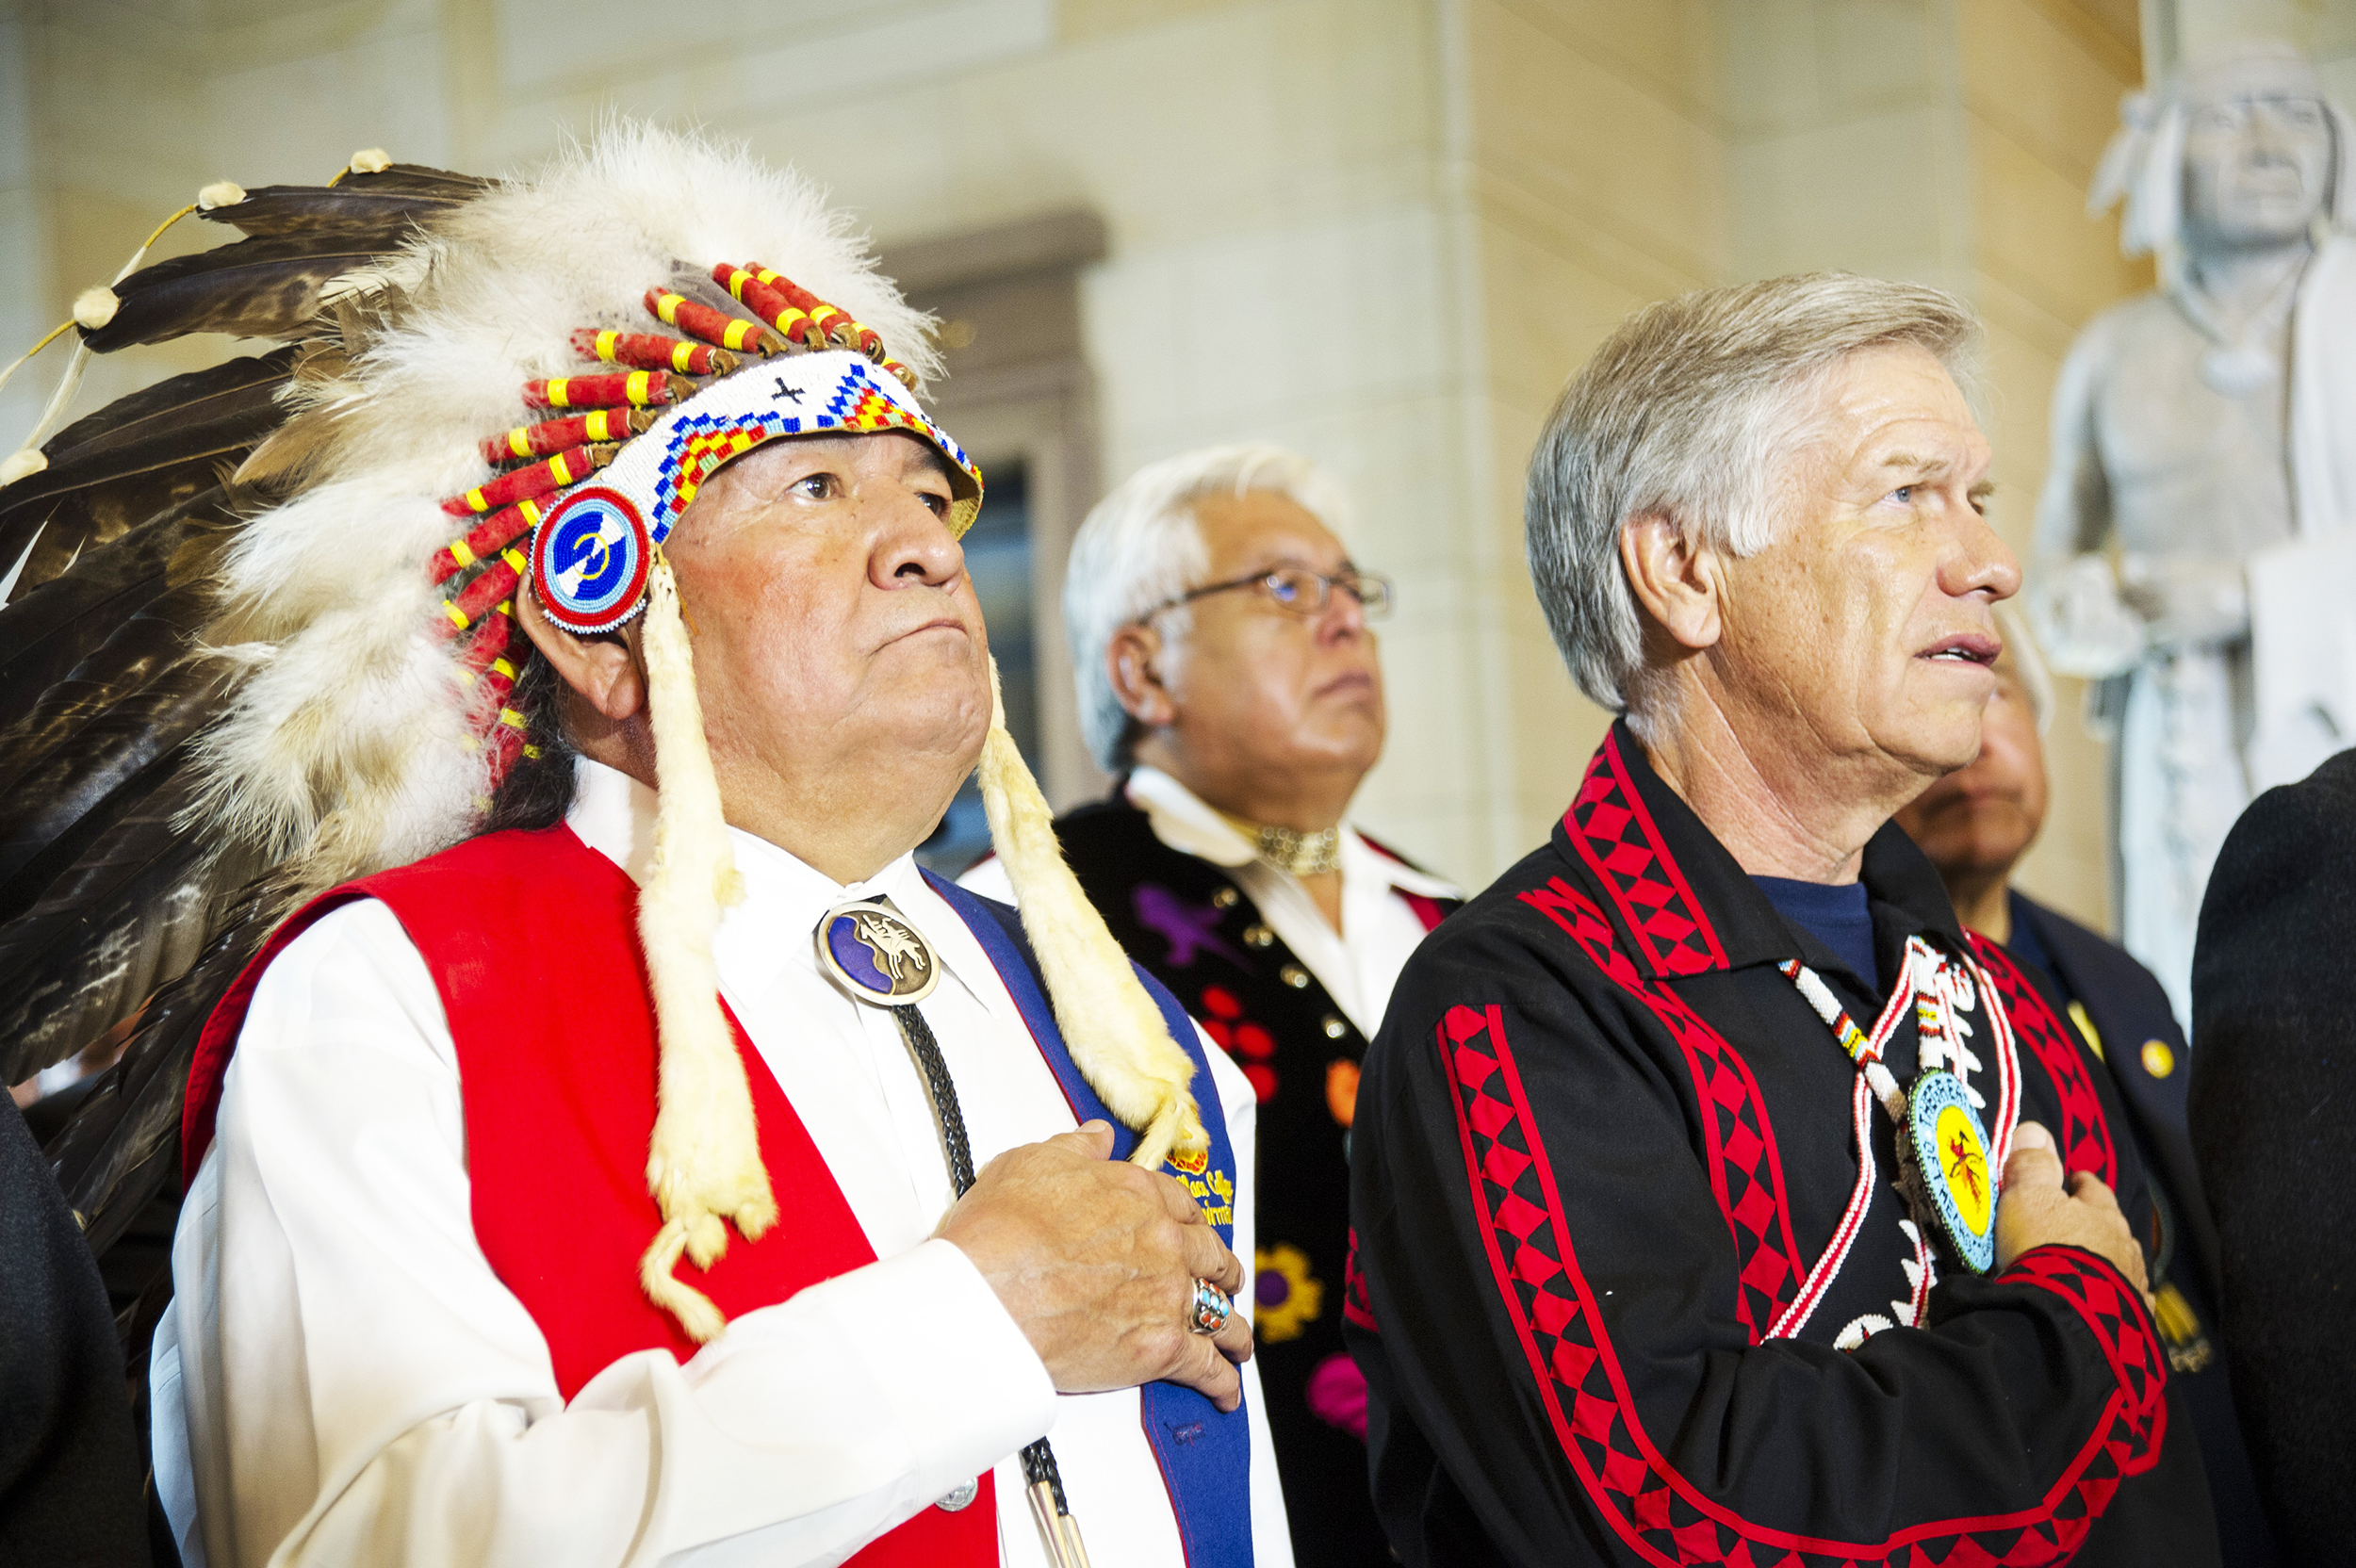 Wallace Coffey, Chief of the Comanche Nation of Oklahoma (left) and Choctaw Nation of Oklahoma Chief Gregory Pyle (right) stand during a ceremony in which their tribal citizens were honored with an award. North Dakota's new law will wrongly rob Native Americans of their voting rights (U.S. Army Staff Sgt. Sean K. Harp/creative commons).